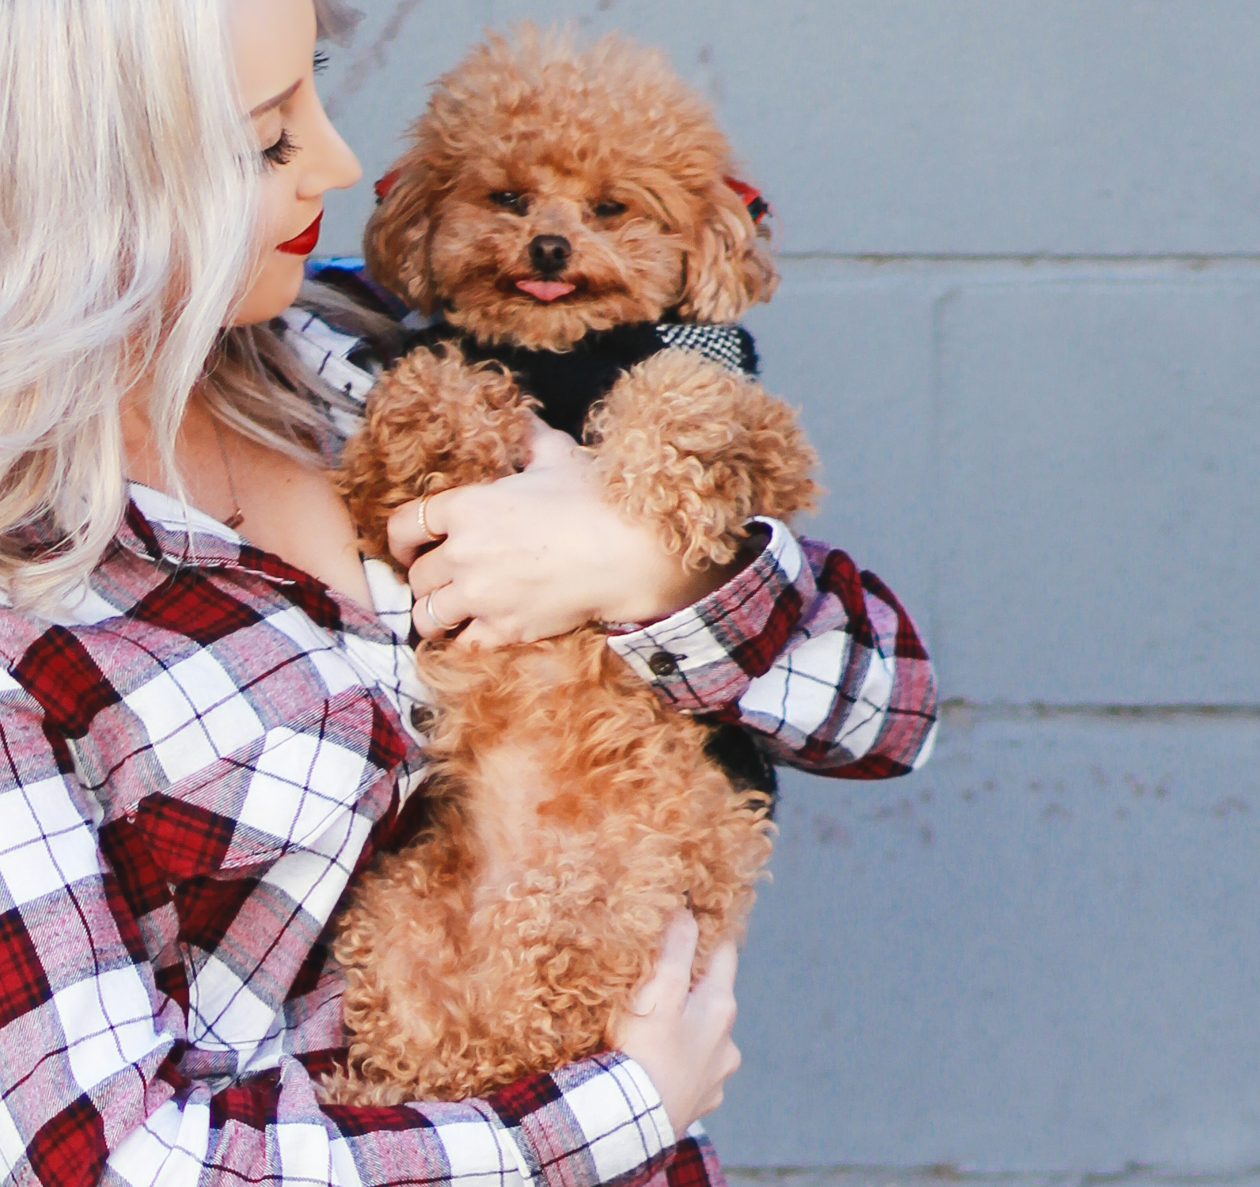 Plaid Button Up | StyledByBlondie.comPlaid Button Up + Red Maltipoo | StyledByBlondie.com